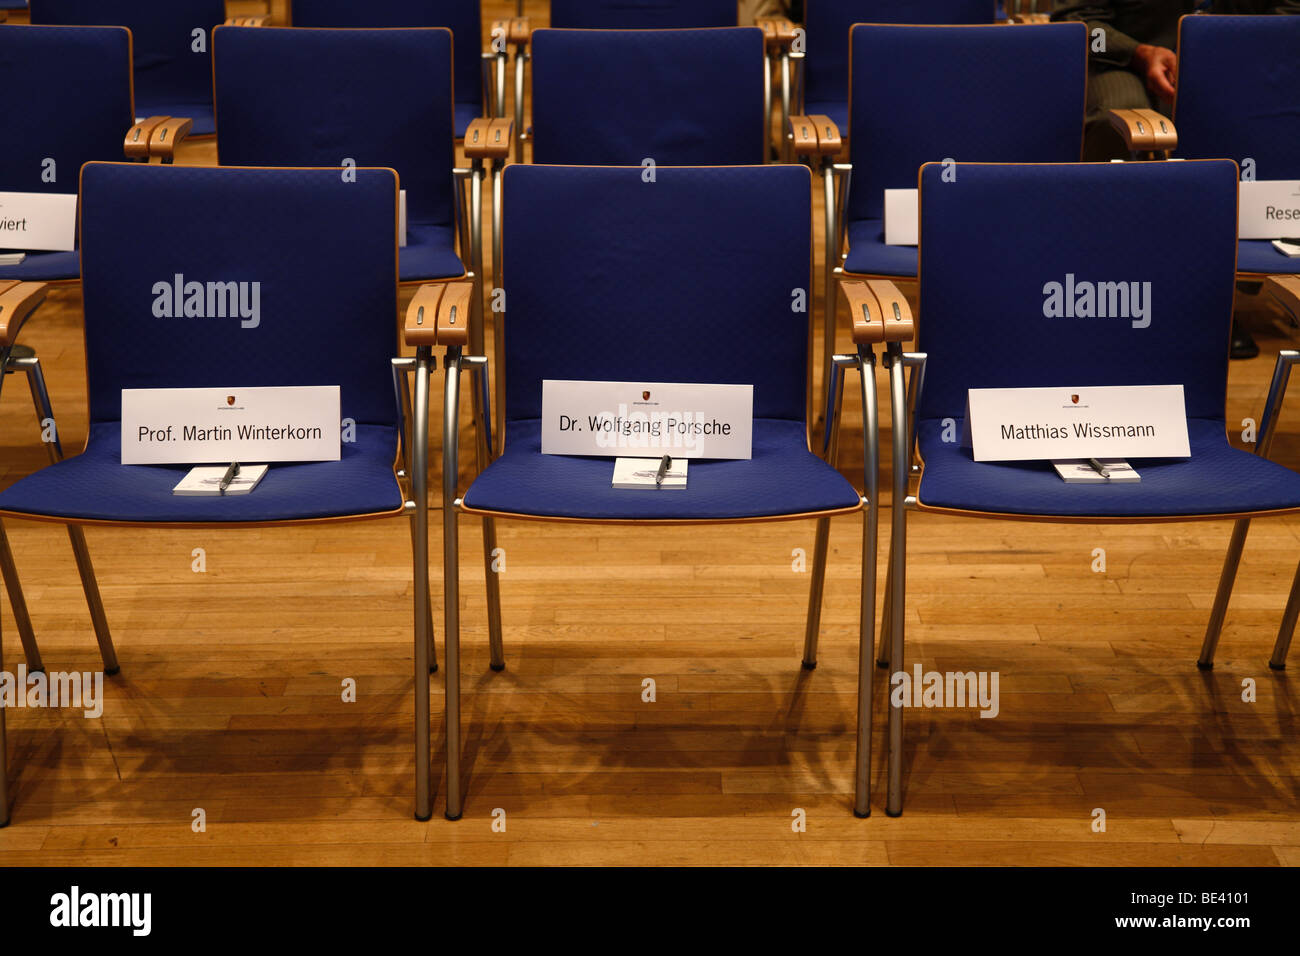 63th International Motor Show ( IAA ): Empty seat rows with the names of Prof. Martin Winterkorn, Wolfgang Porsche - Stock Image